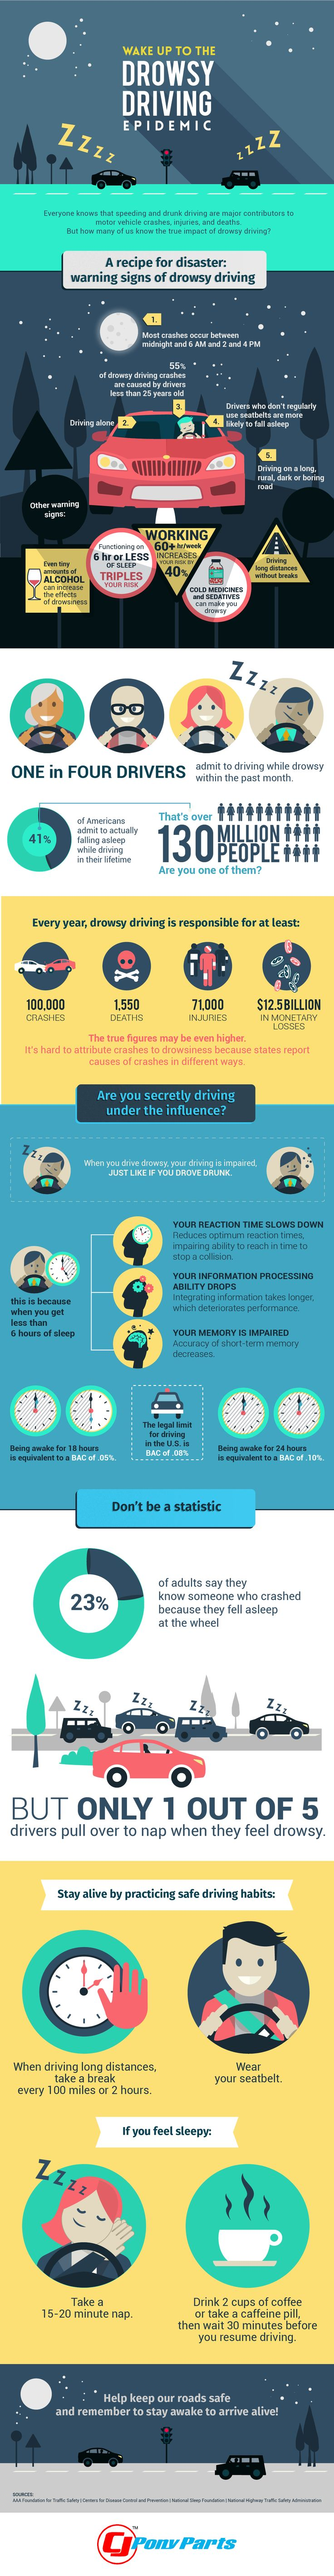 Infographic: Drowsy Driving Can Be Just as Dangerous as Drunk Driving